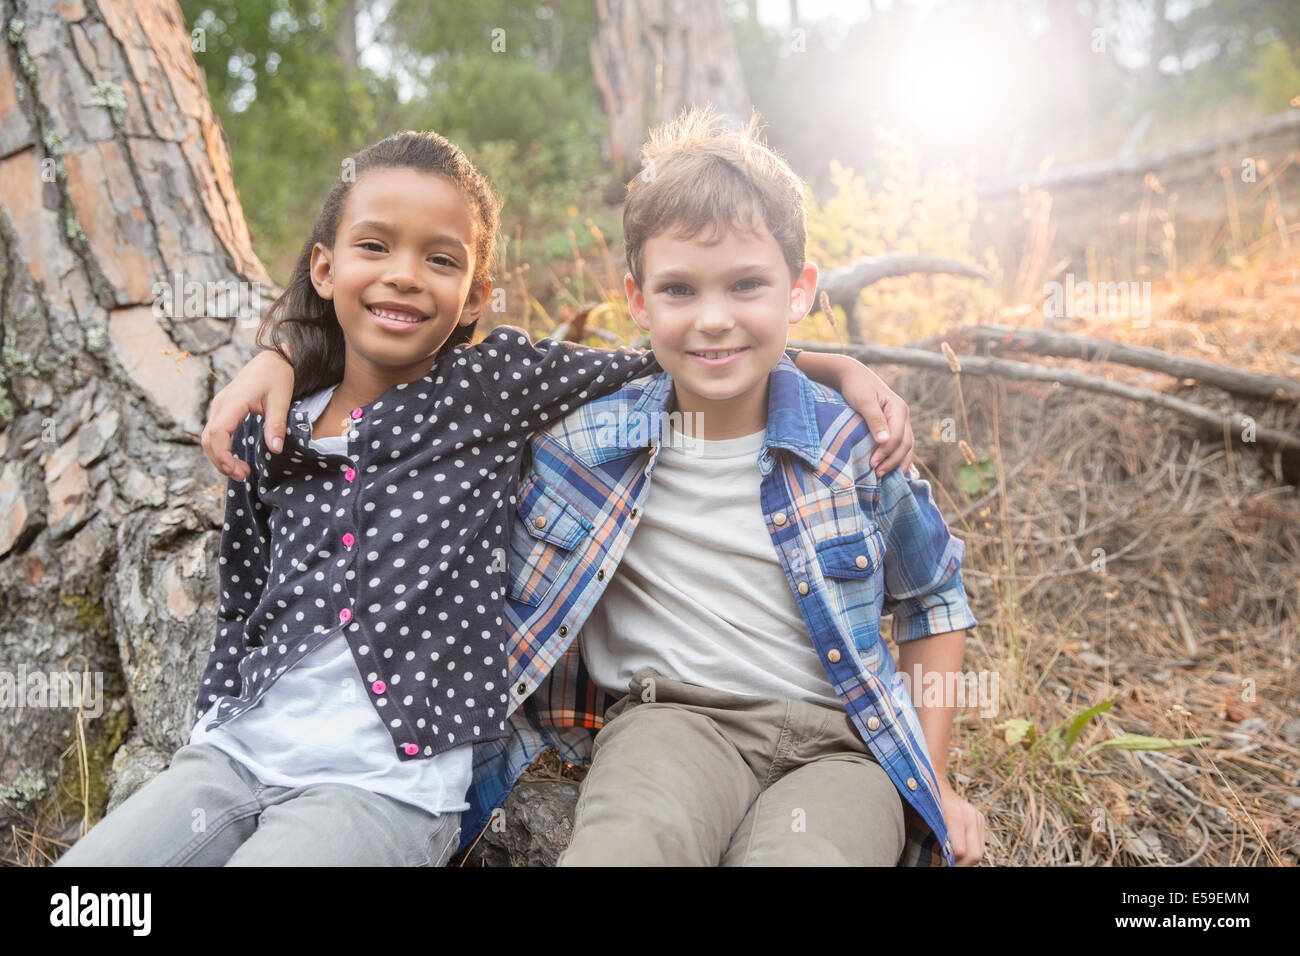 Children sitting together outdoors - Stock Image